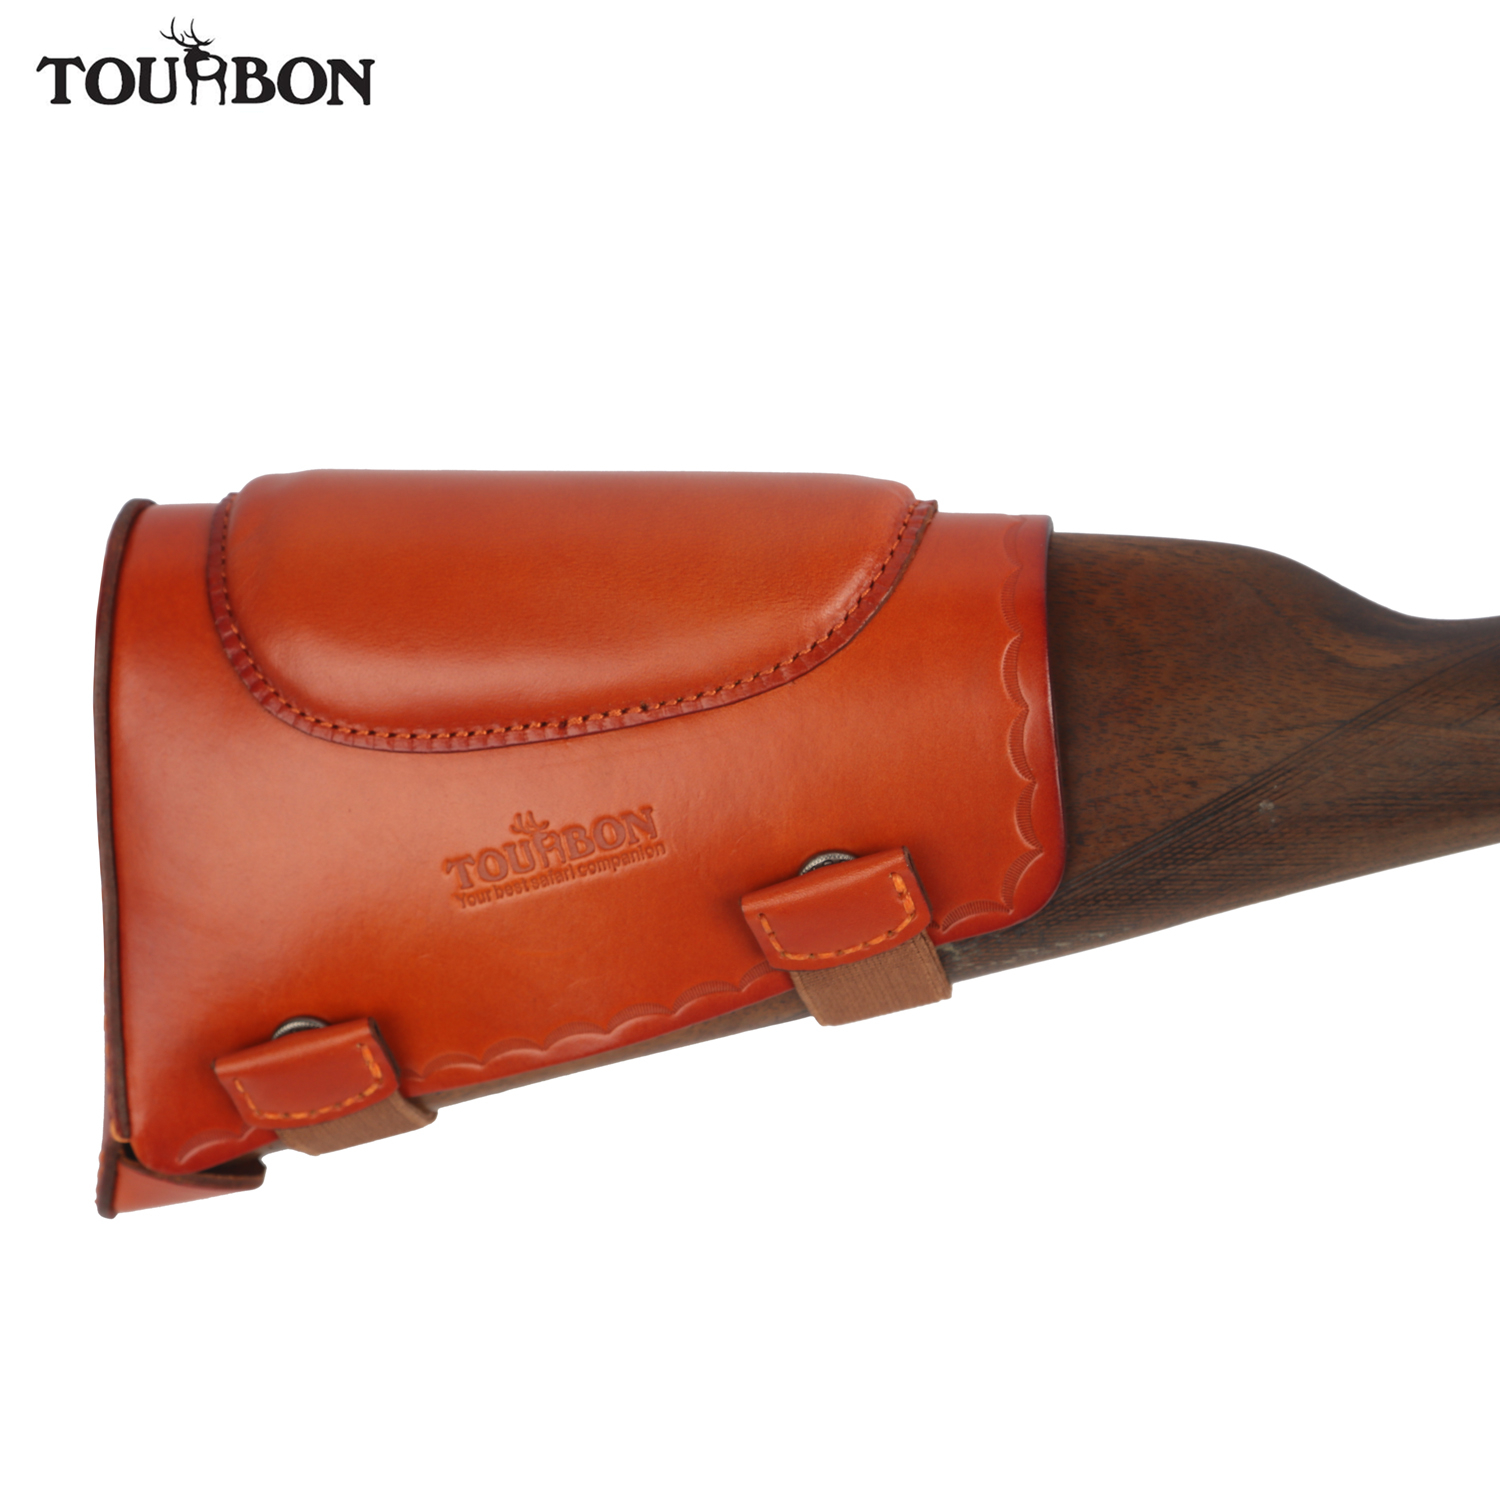 Tourbon Tactical Hunting Rifle Shotgun Buttstock Cheek Rest Universal Genuine Leather Recoil Pad Protector Gun Accessories